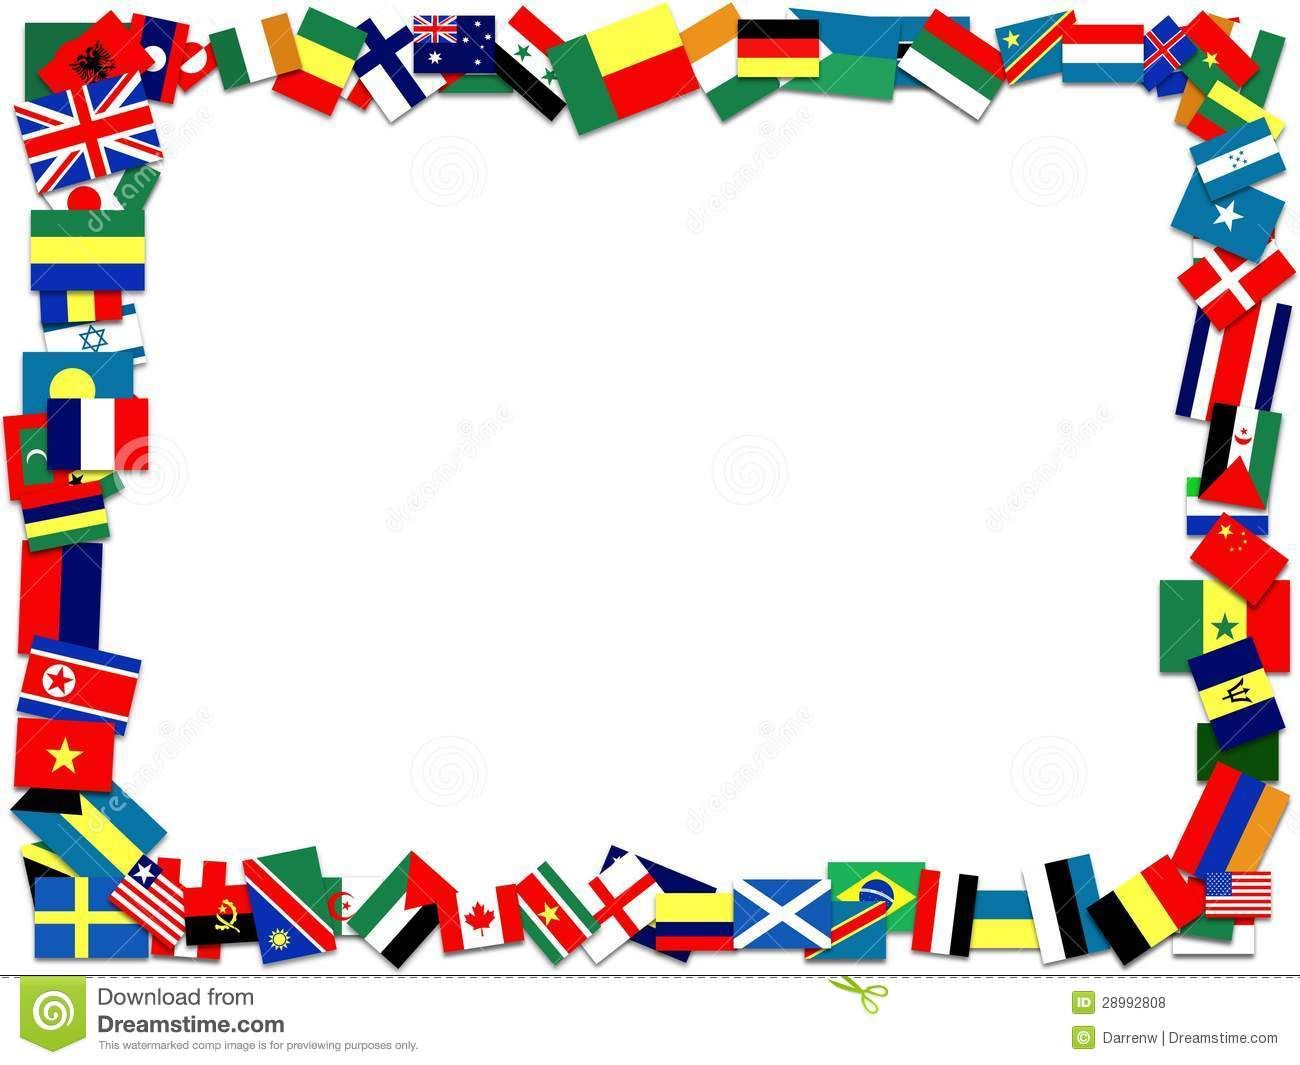 World flags border clipart svg freeuse download Reading around the World Clip Art | Flag Frame Royalty Free ... svg freeuse download